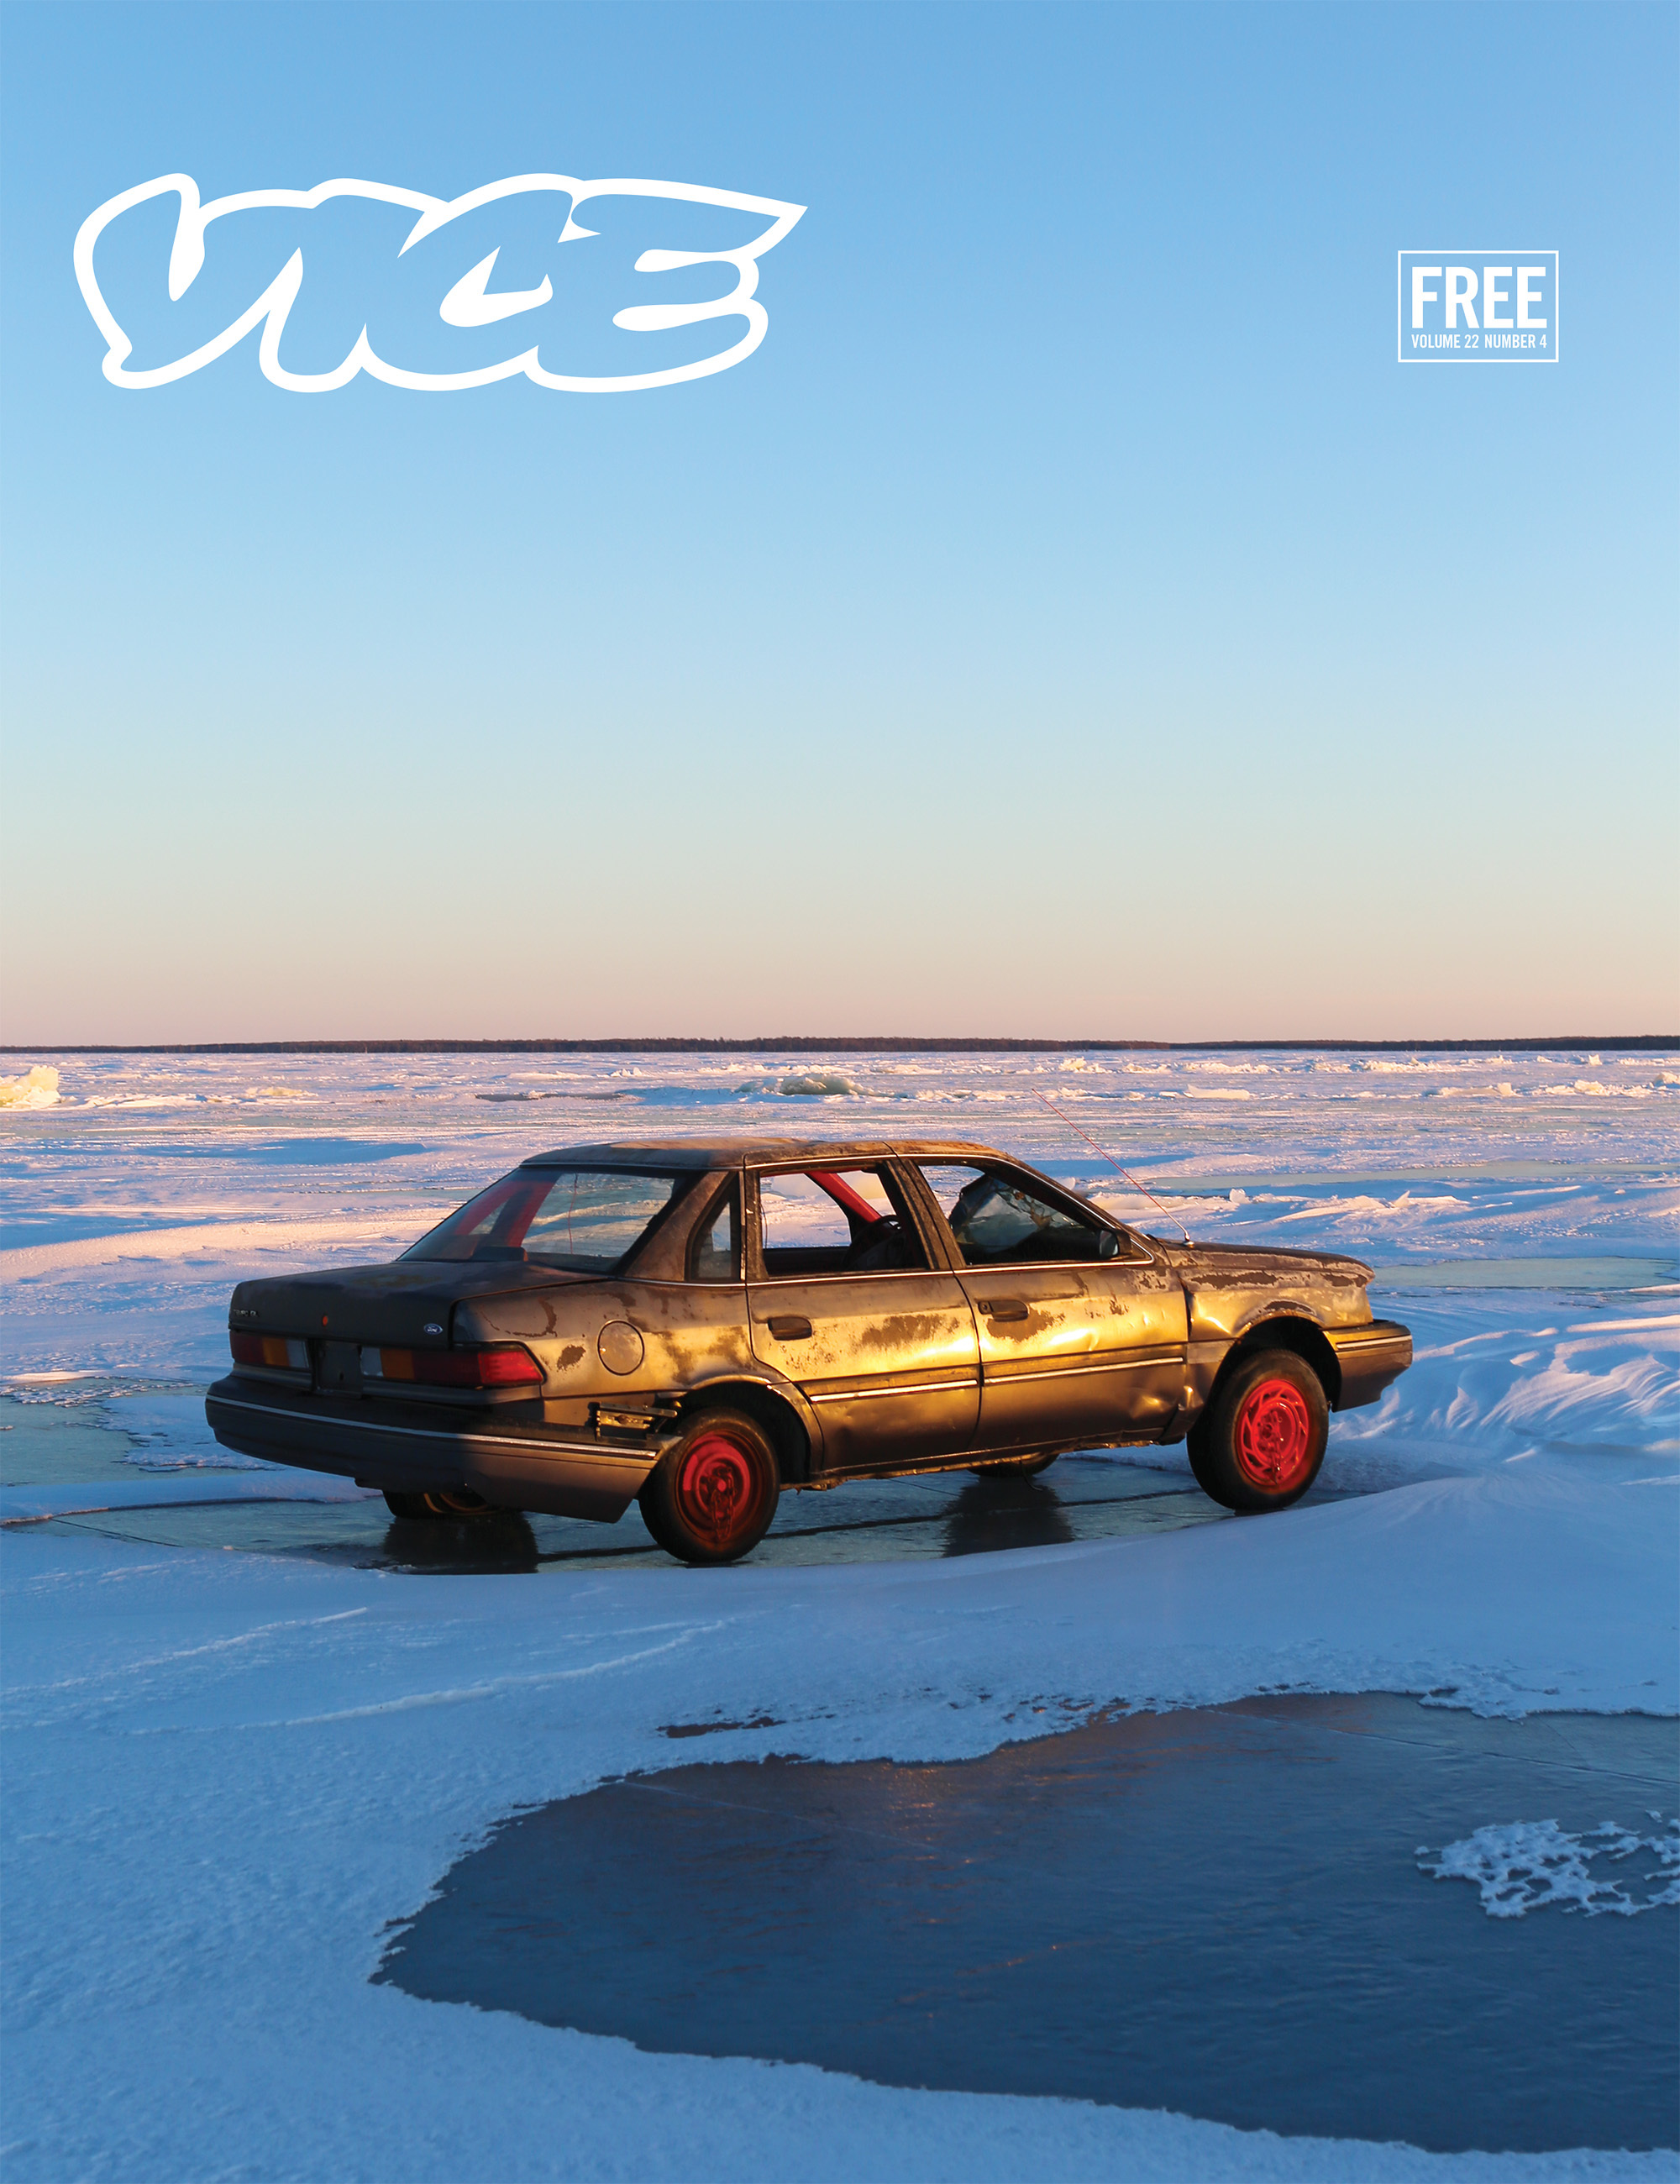 The April Issue of VICE Magazine Is Now Online - VICE